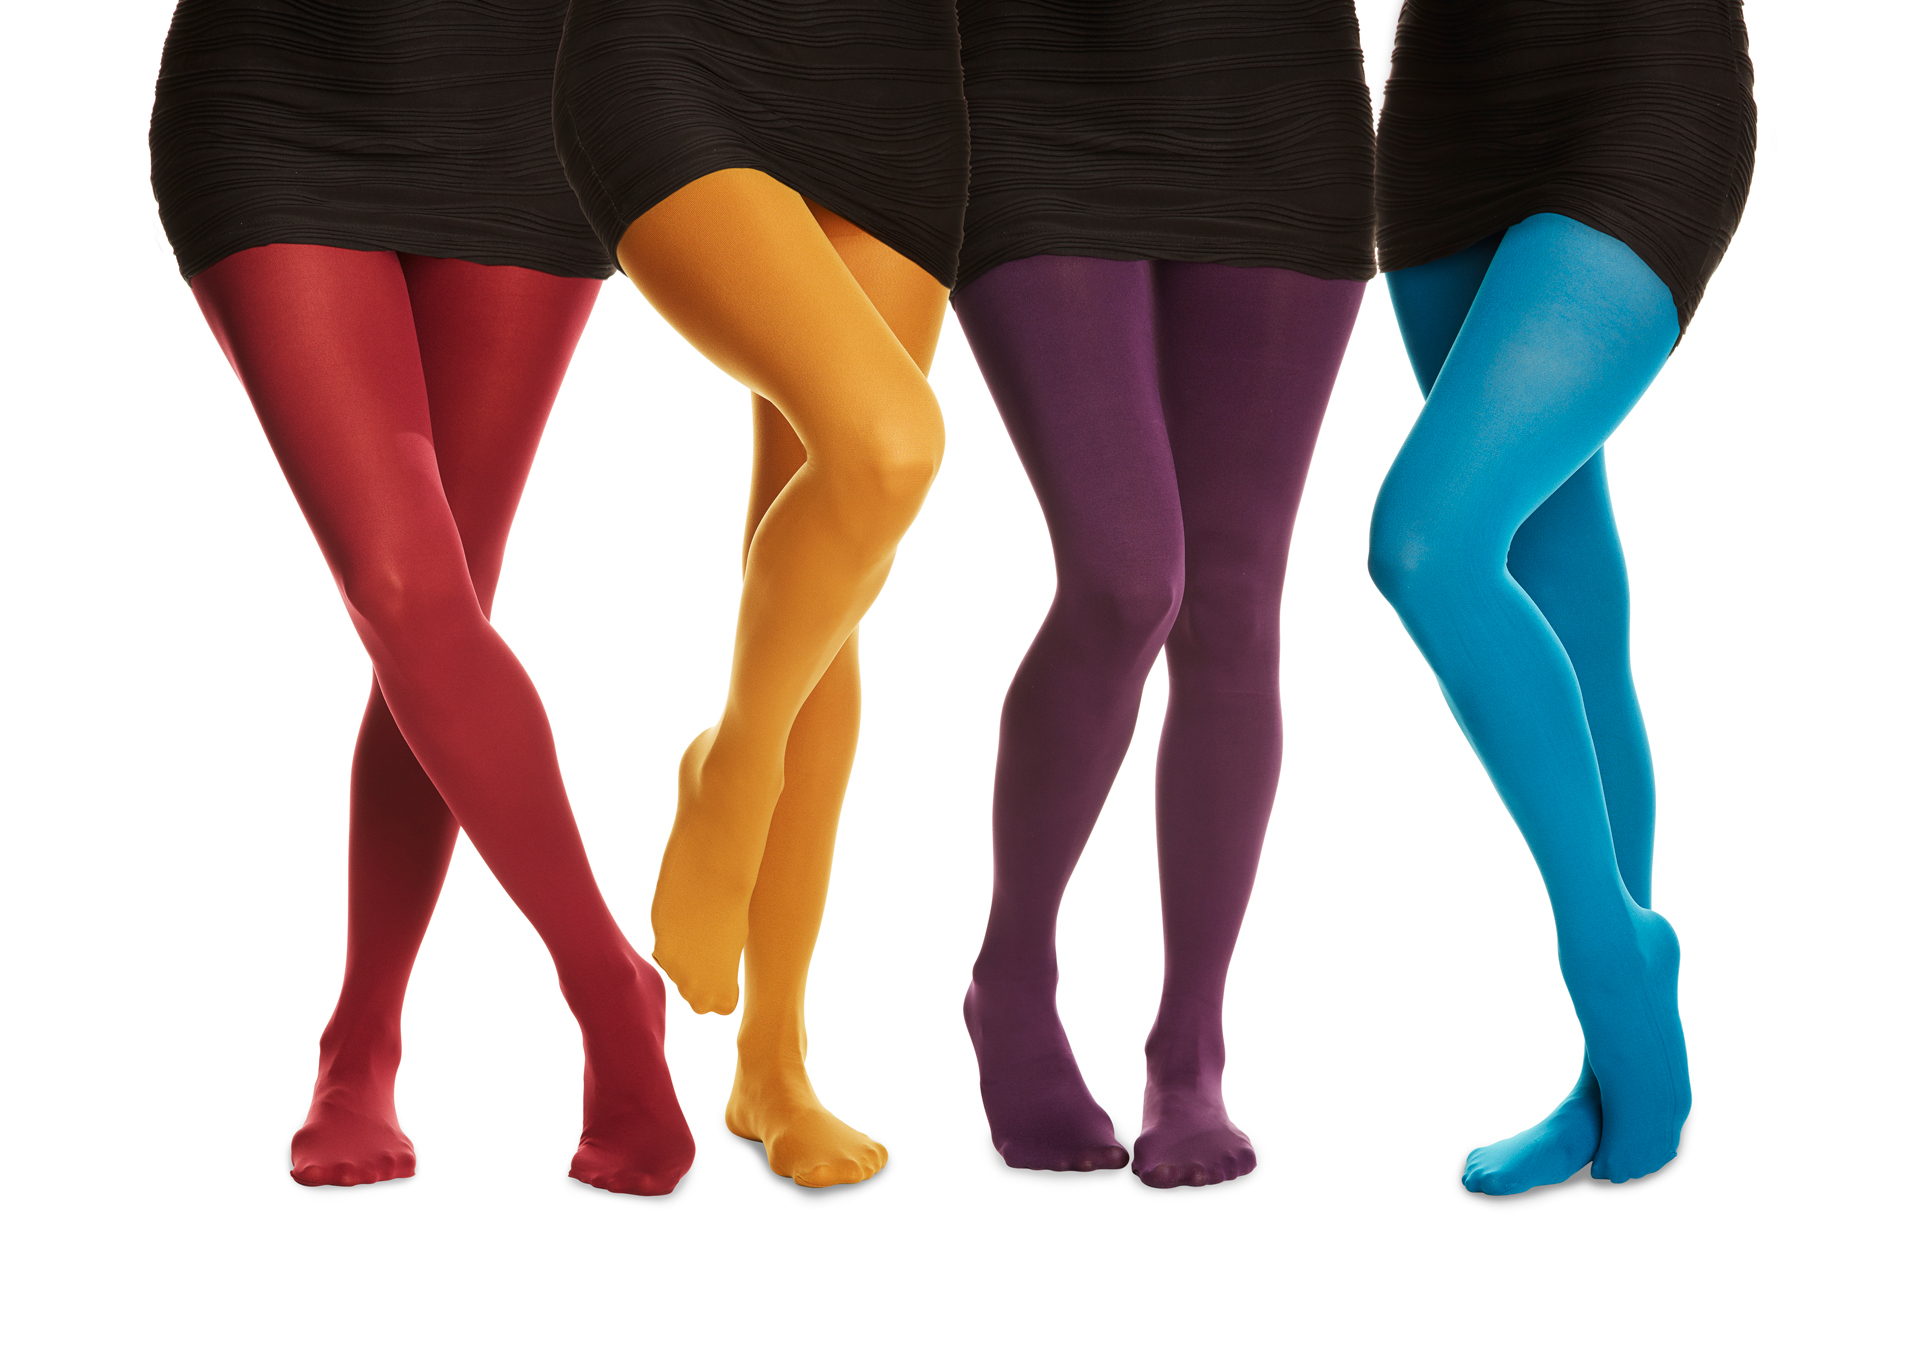 https://ghk.h-cdn.co/assets/cm/15/11/54ff3095346b8-ghk-best-tights-s2.jpg